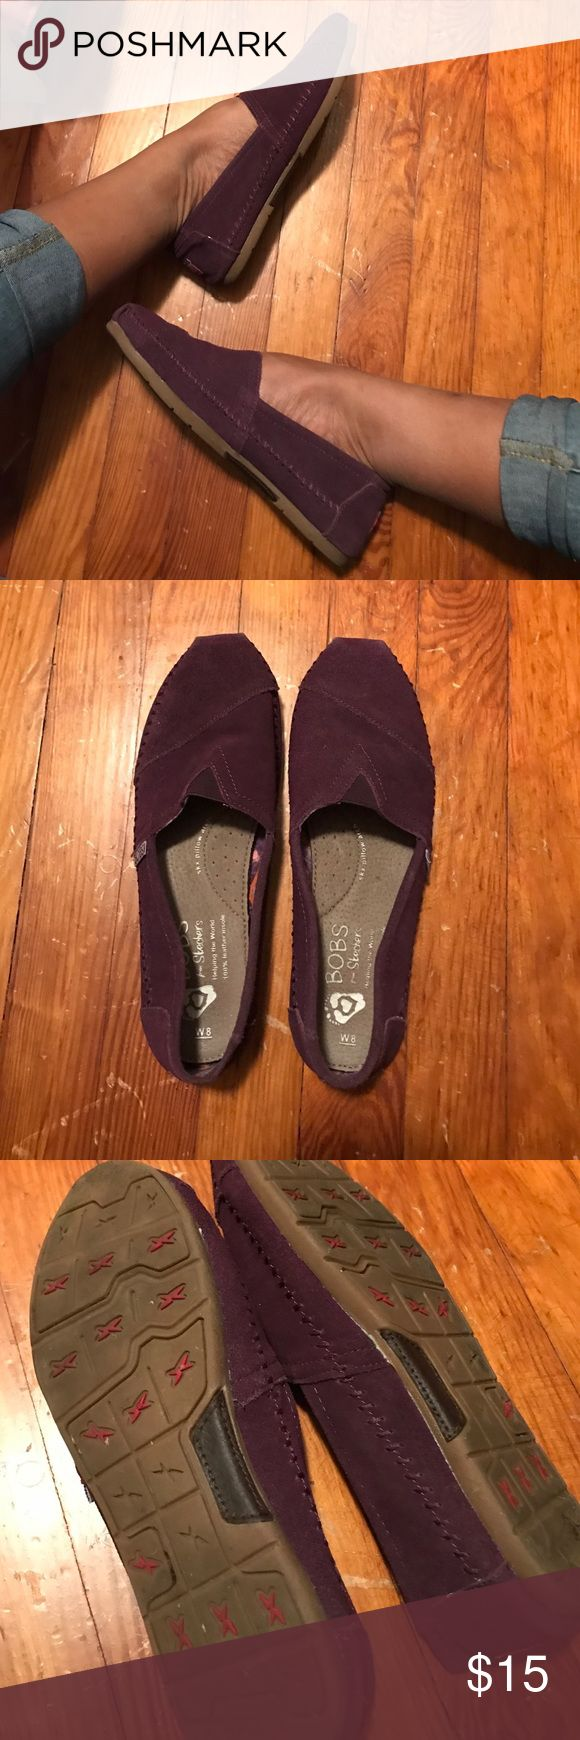 Purple Bobs Shoes Cute Purple bobs shoes. They are very similar to the Toms shoes. Size 8. They are a dark purple suede like material. Very comfortable. Great condition! Bobs Shoes Flats & Loafers